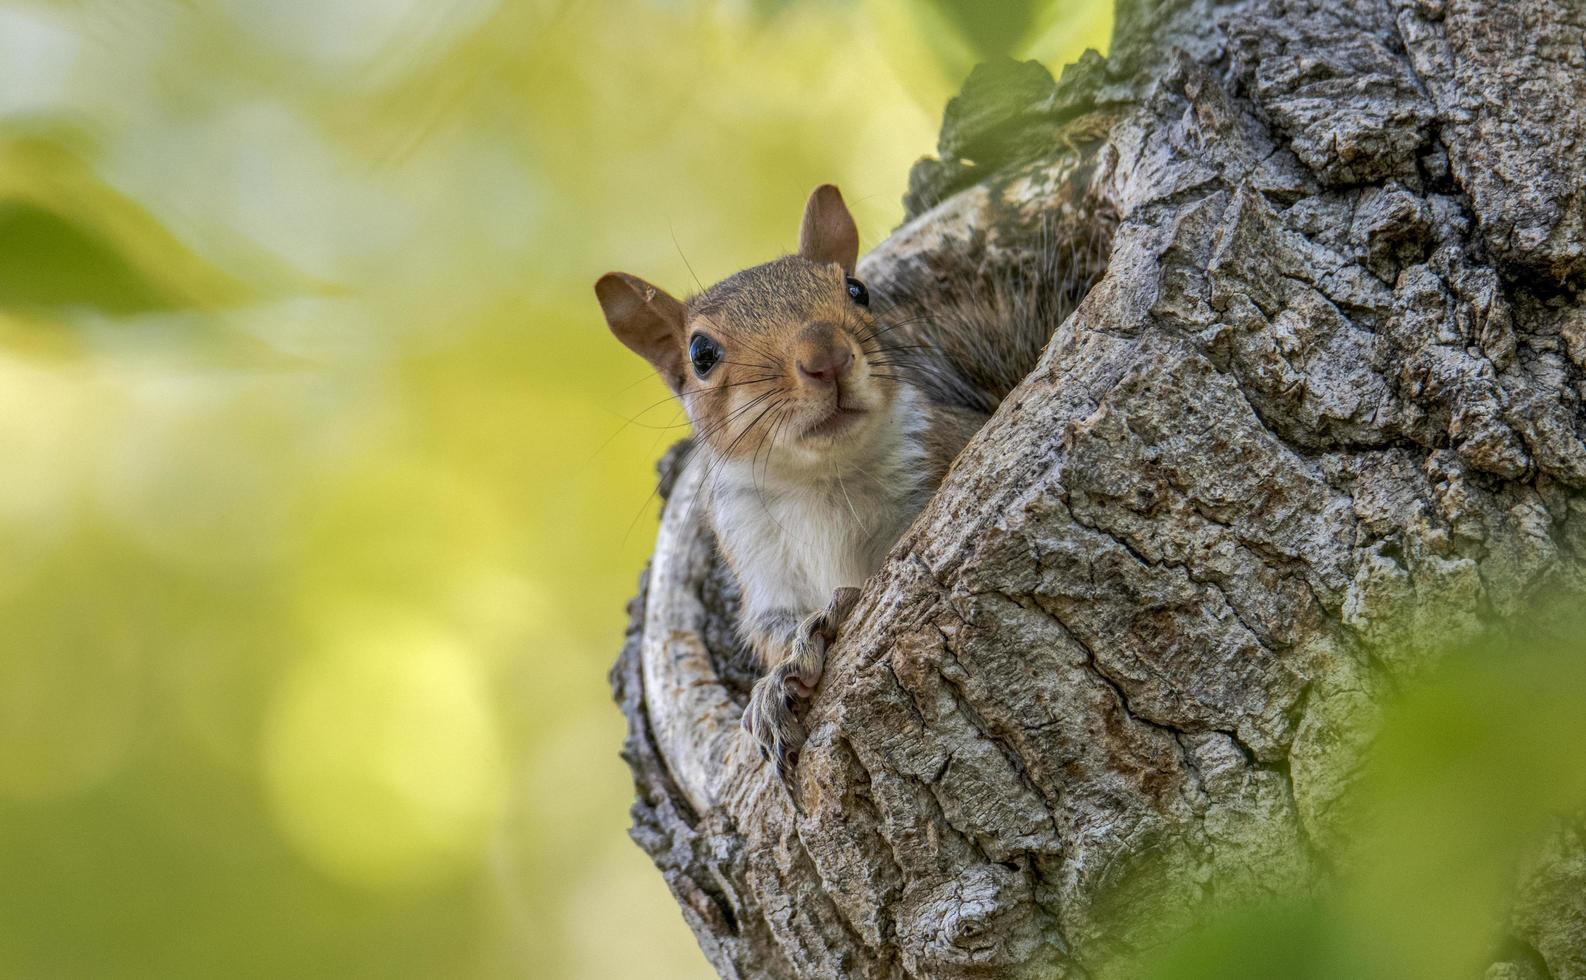 Squirrel in tree photo